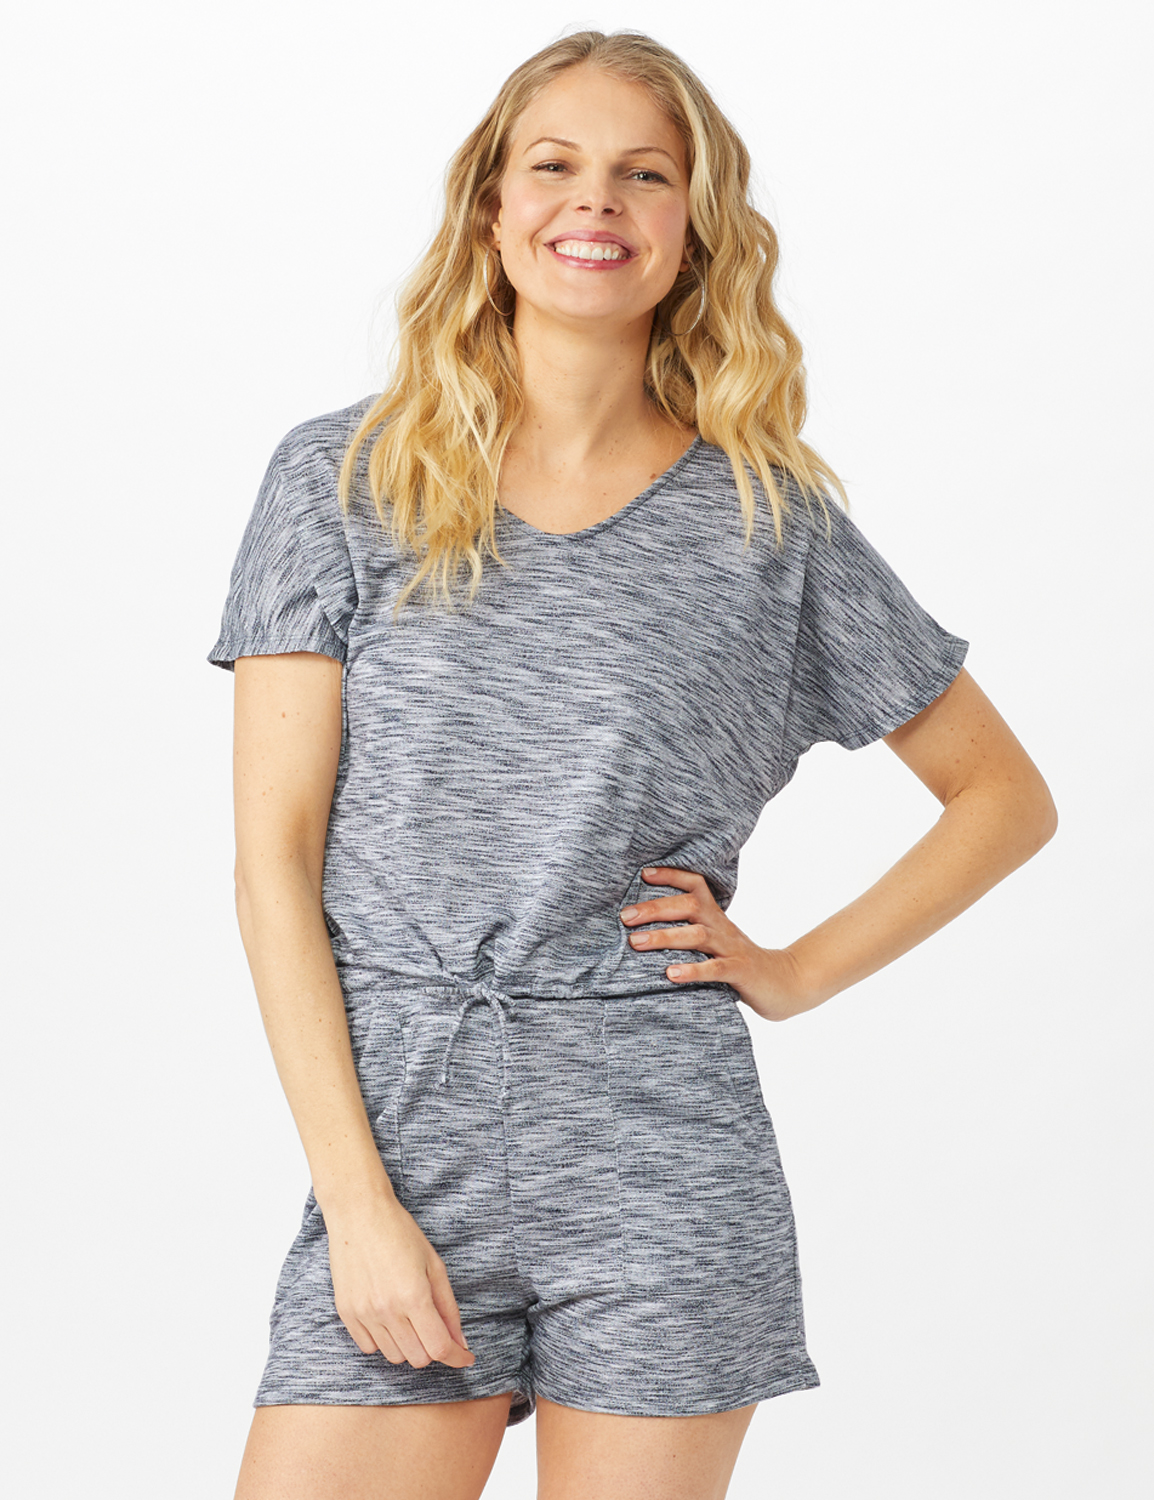 Space Dye French Terry Knit Top - Indigo - Front